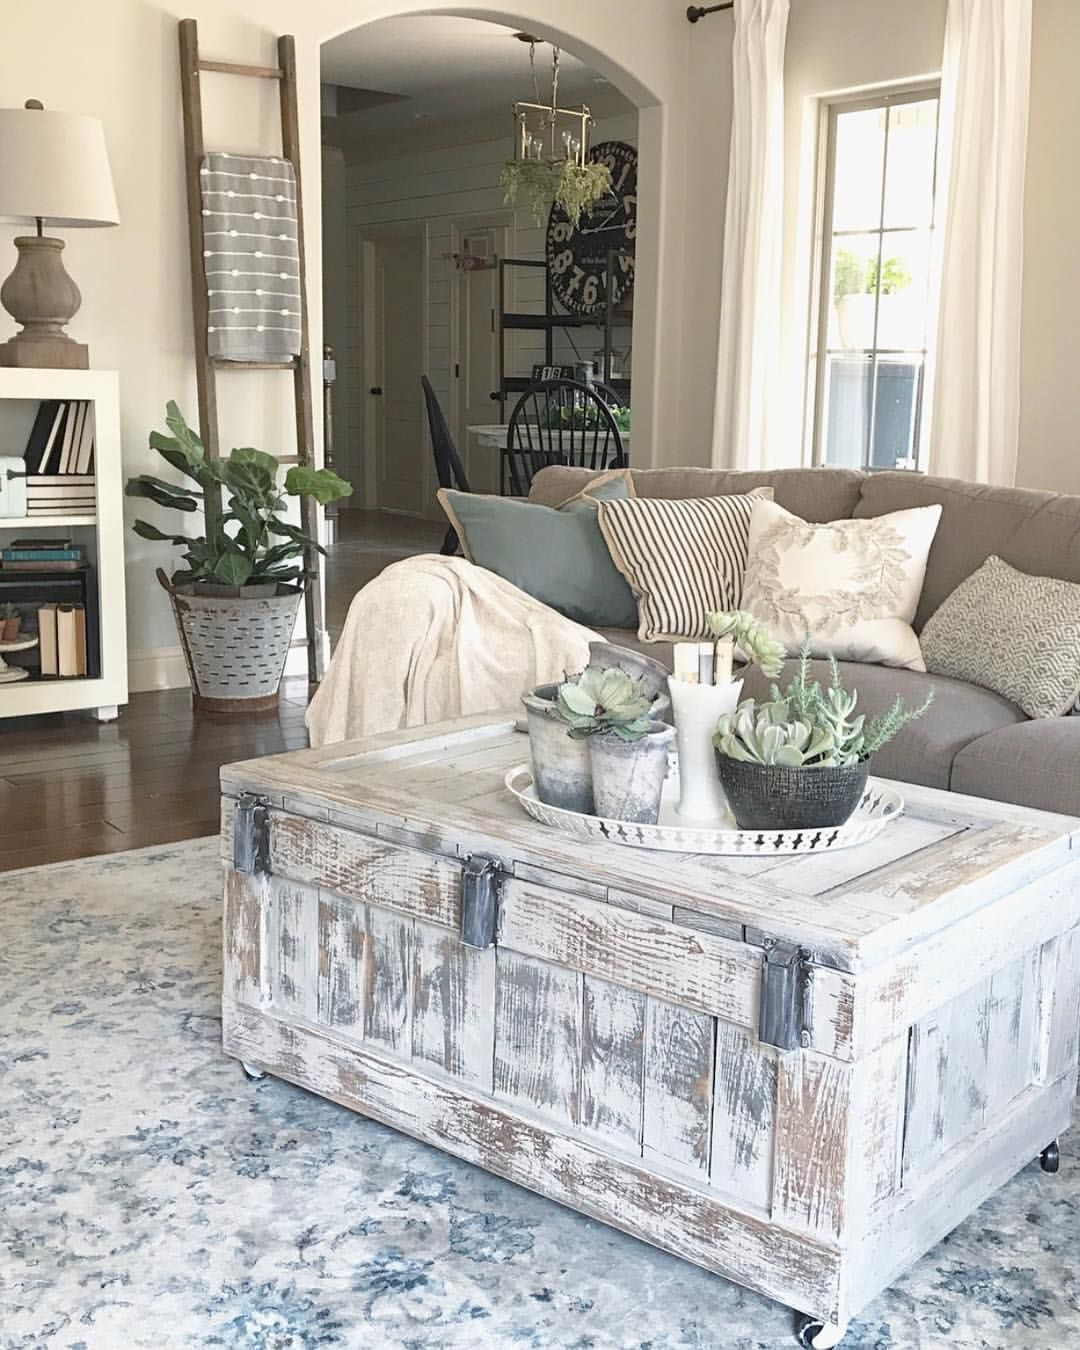 Decor Coffee Table Distressed Stockton Farm: Love This Distressed Trunk Coffee Table Family Room